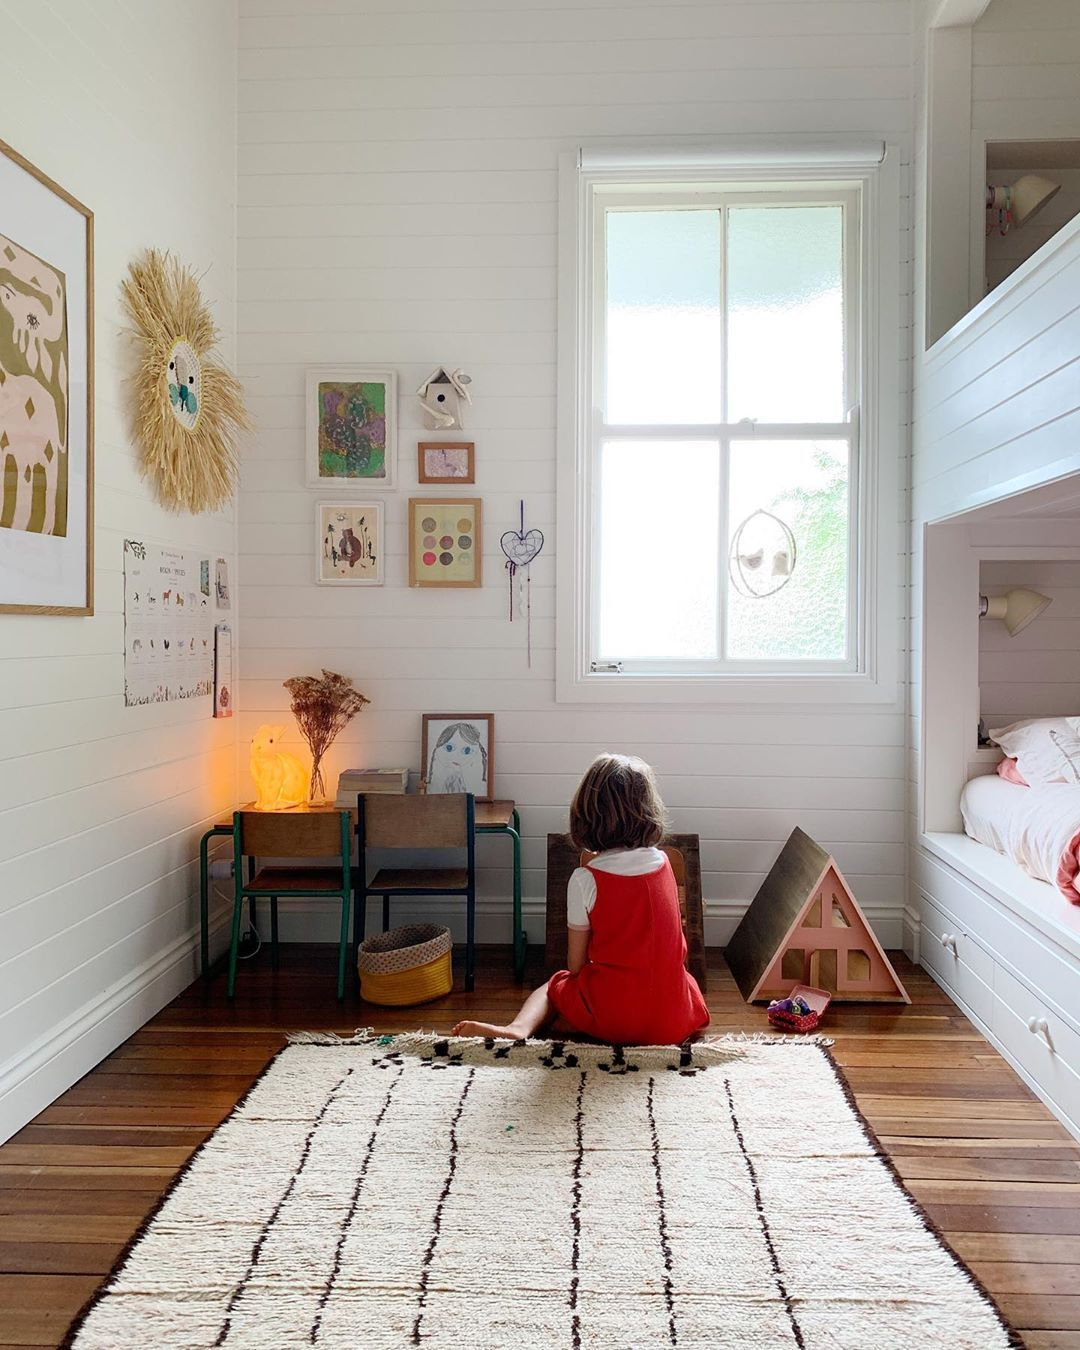 Children S Bedroom With Simple Design And Layout And Art On The Walls Room Kid Room Decor Home